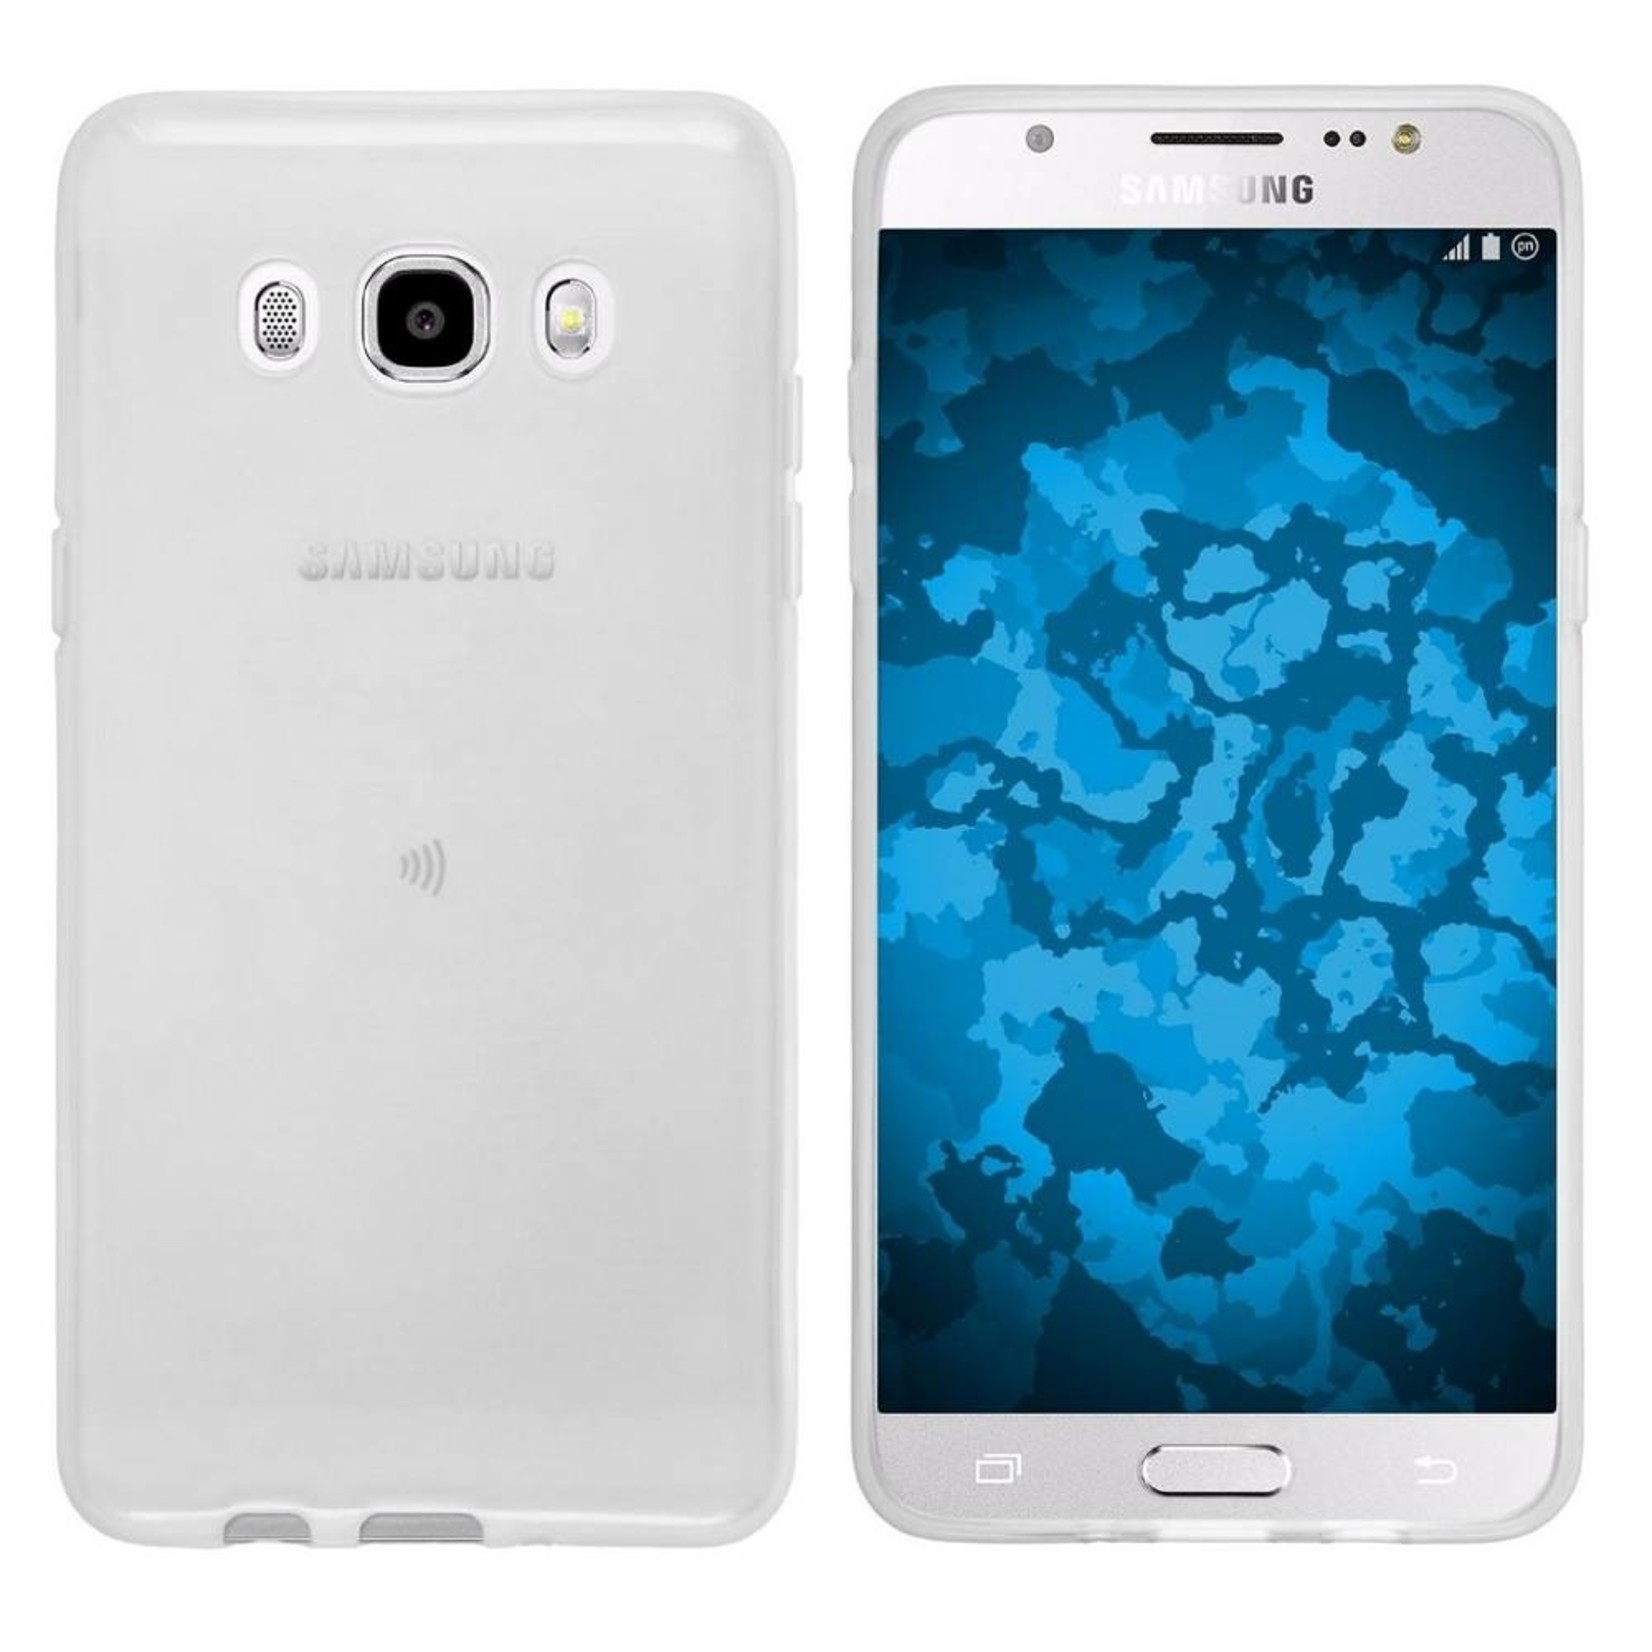 Colorfone Hoesje CoolSkin3T voor Samsung J5 2016/Duos Transparant Wit